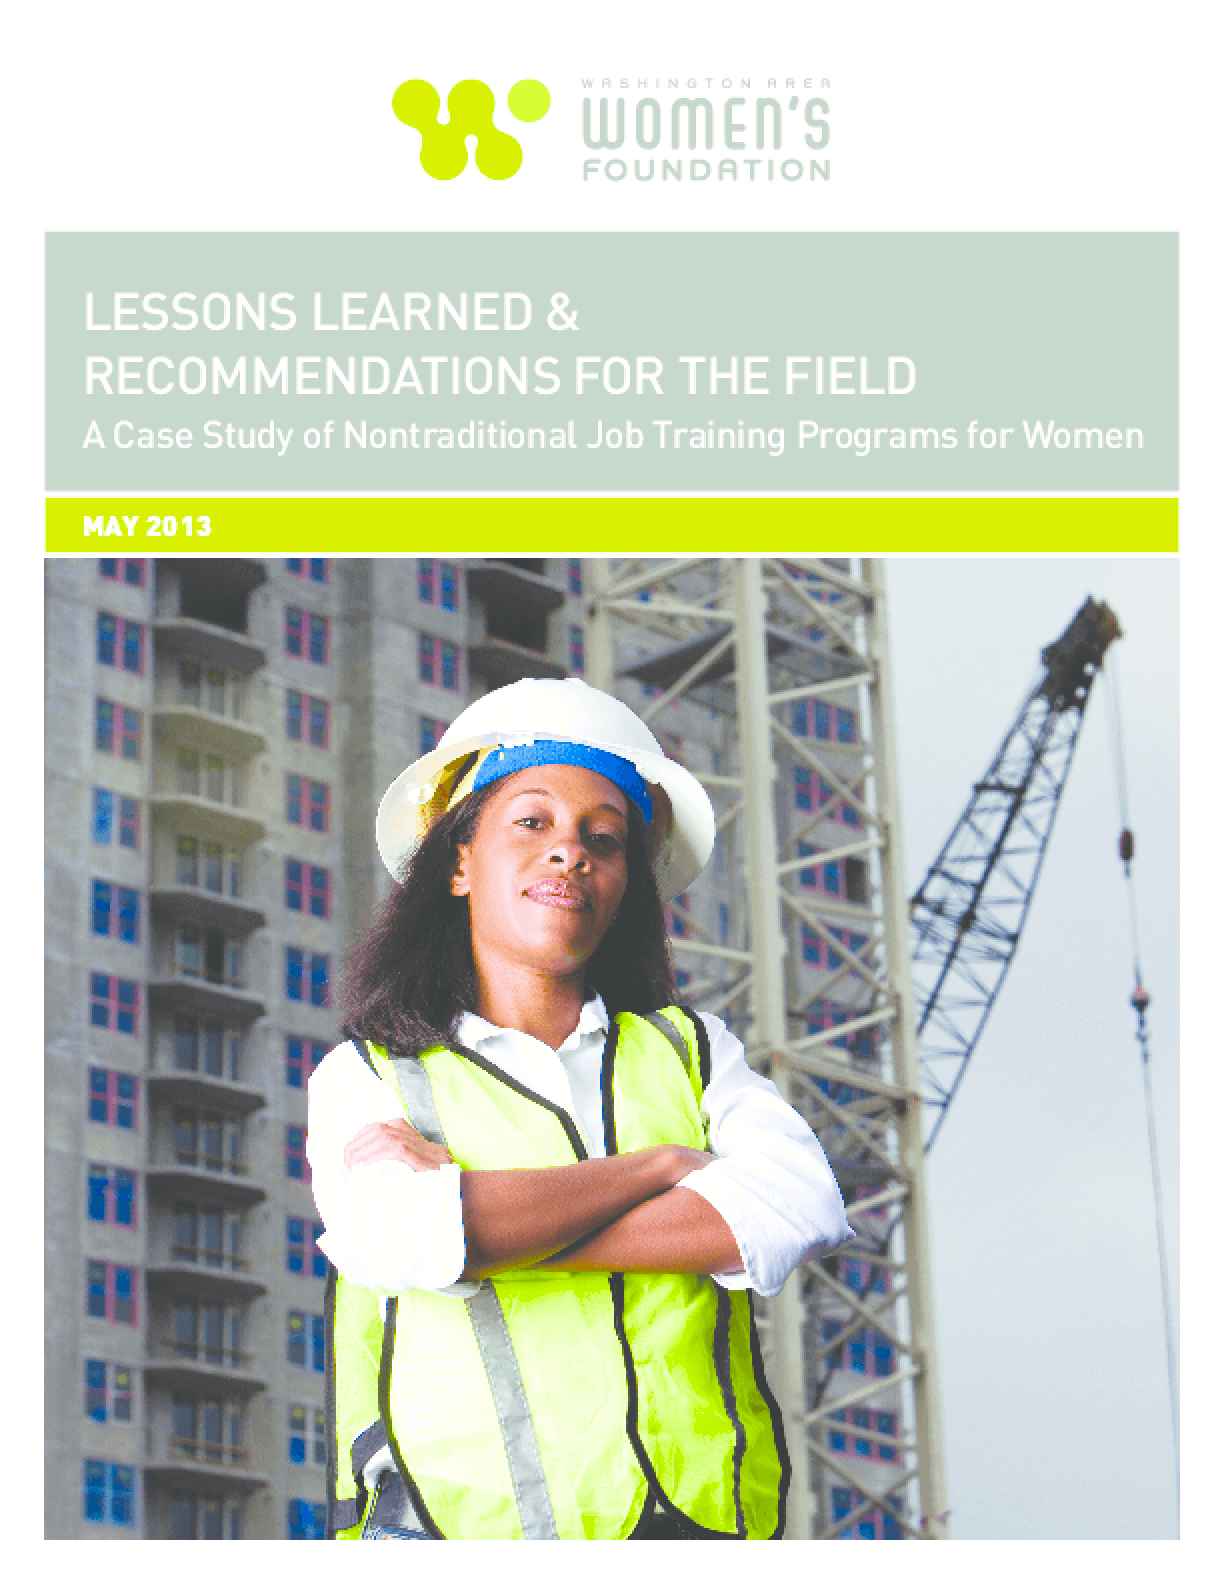 Lessons Learned & Recommendations for the Field: A Case Study of Nontraditional Job Training Programs for Women